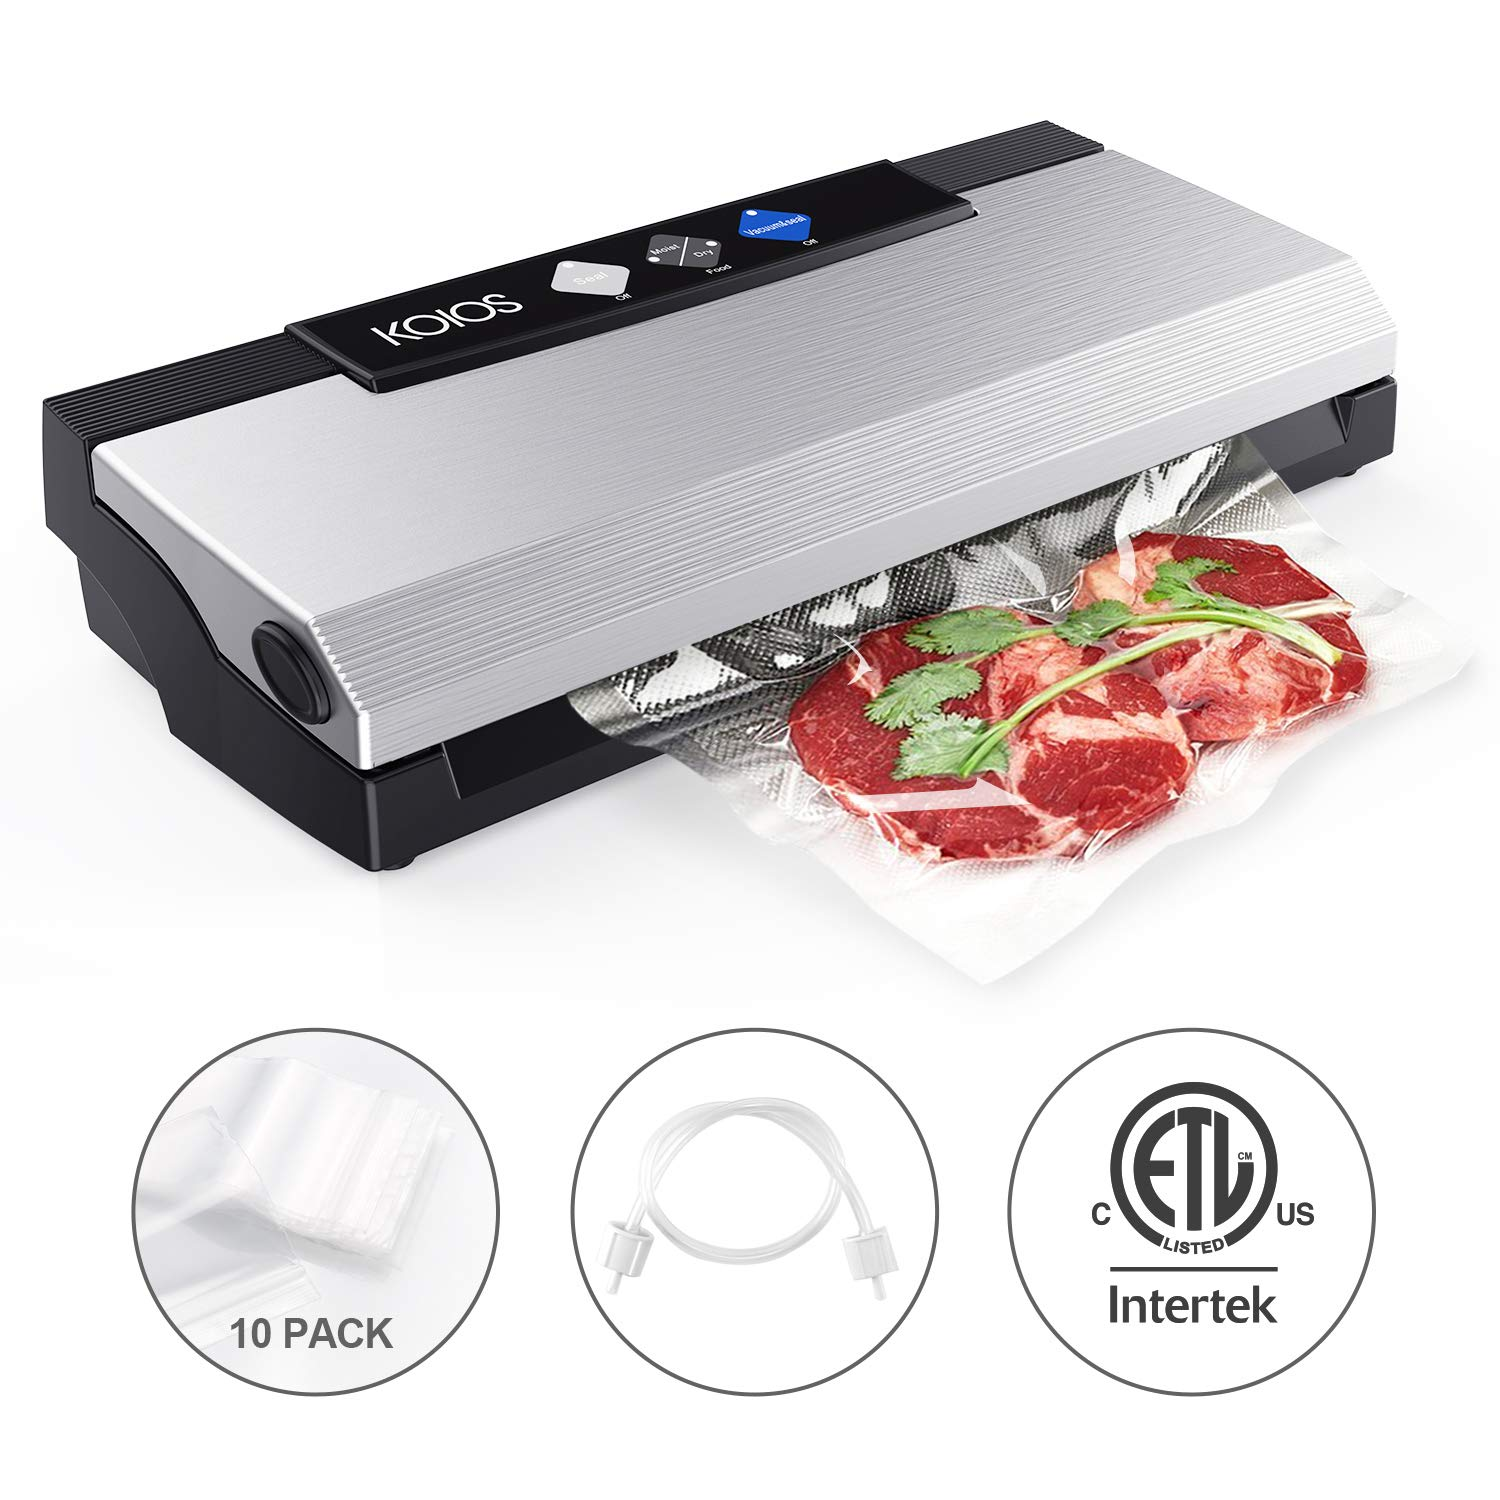 KOIOS Vacuum Sealer Machine, 80Kpa Automatic Food Sealer with Cutter for Food Savers, 10 Sealing Bags (FDA-Certified), With Up To 40 Consecutive Seals, Dry & Moist Modes, Compact Design (Silver) by KOIOS